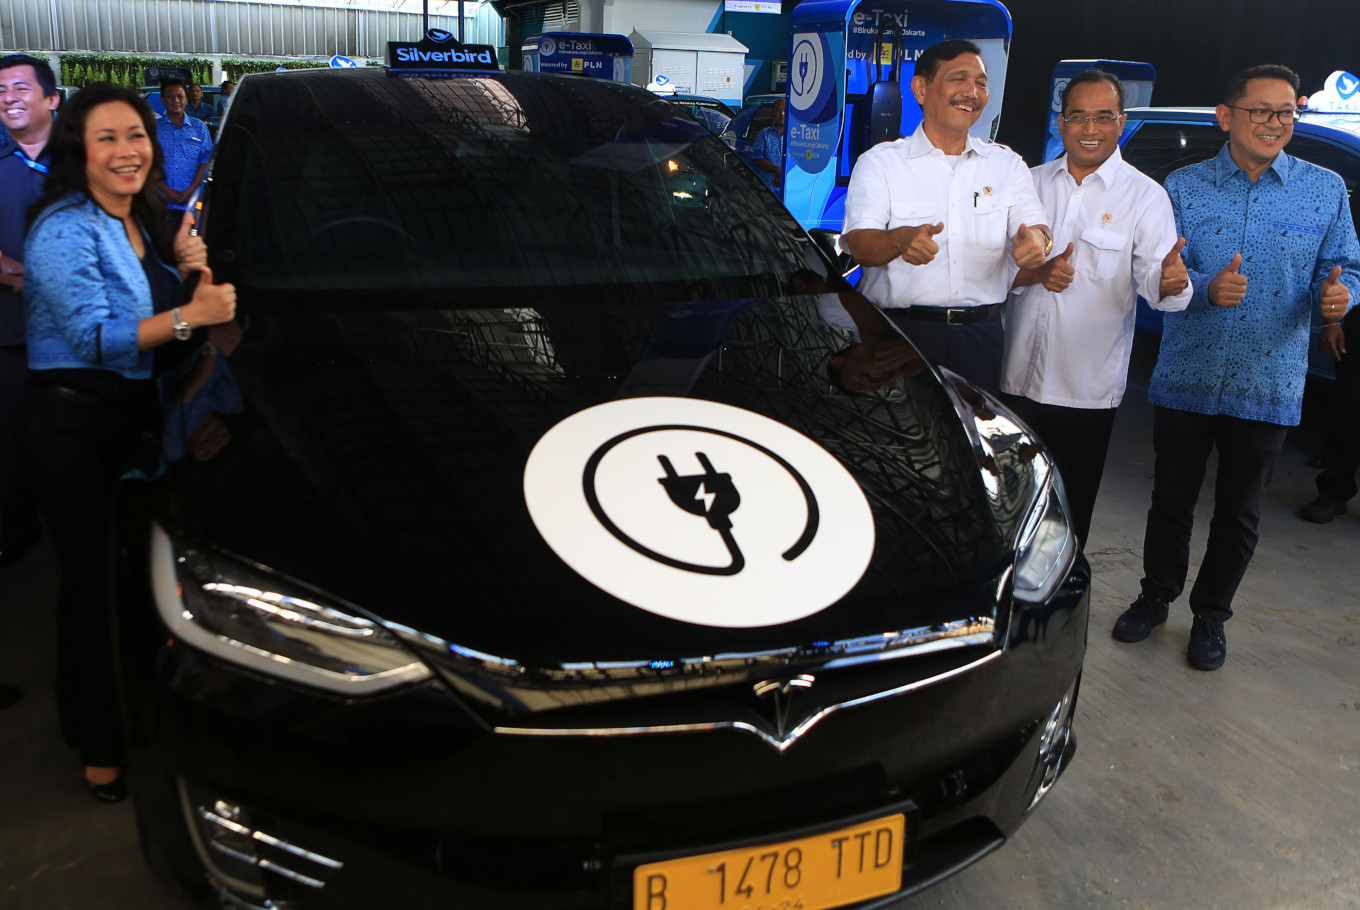 Blue Bird to roll out 200 electric taxis in 2020